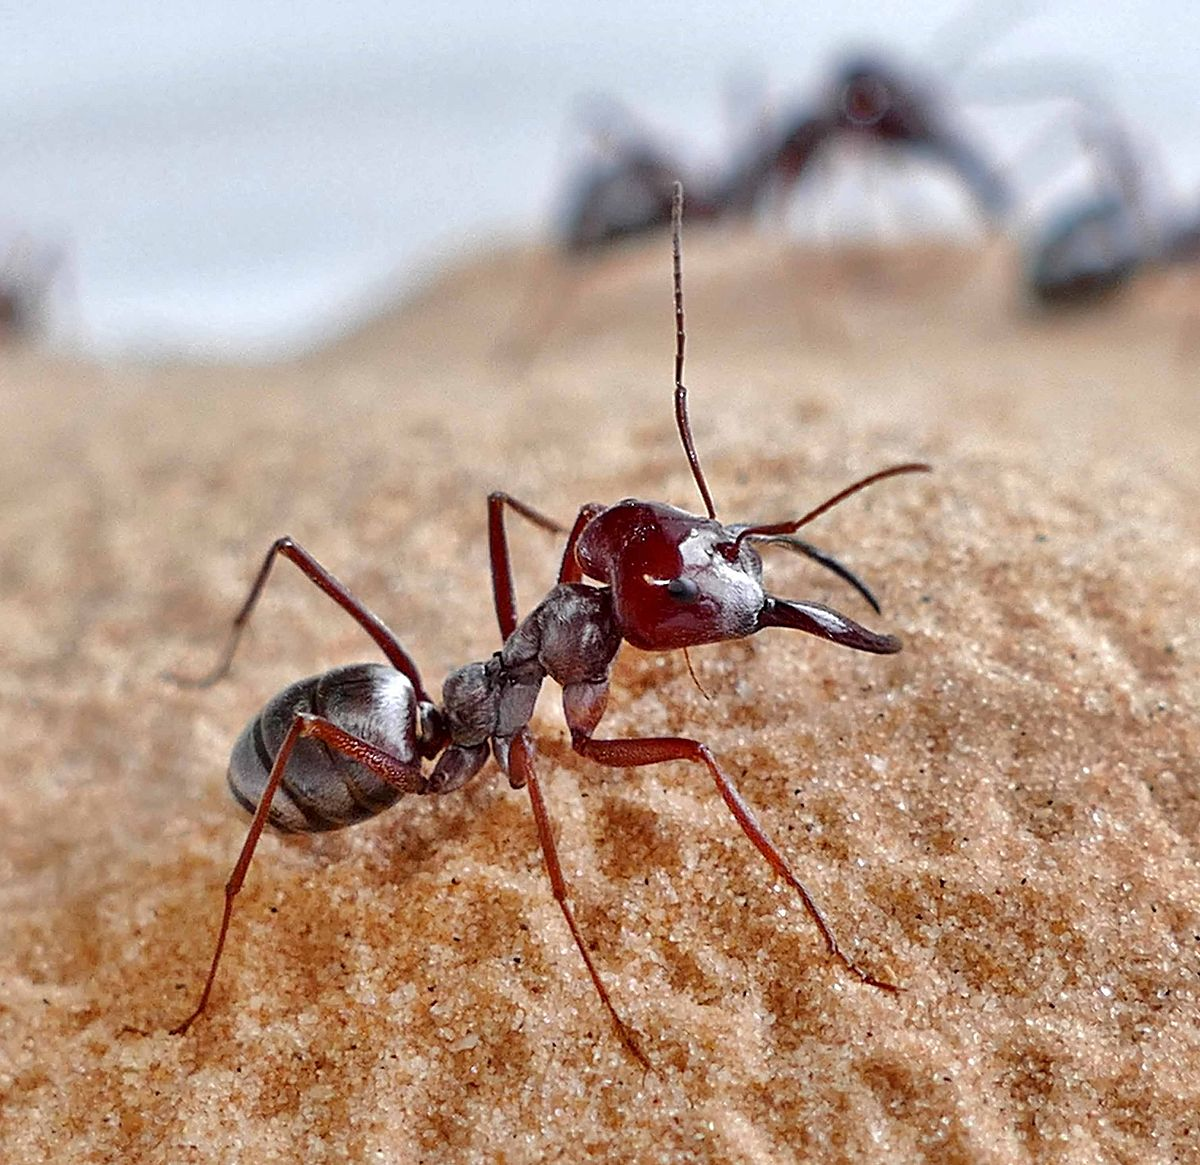 Saharan silver ant (Cataglyphis bombycina) workers at the nest entrance. (Photo: Harald Wolf)